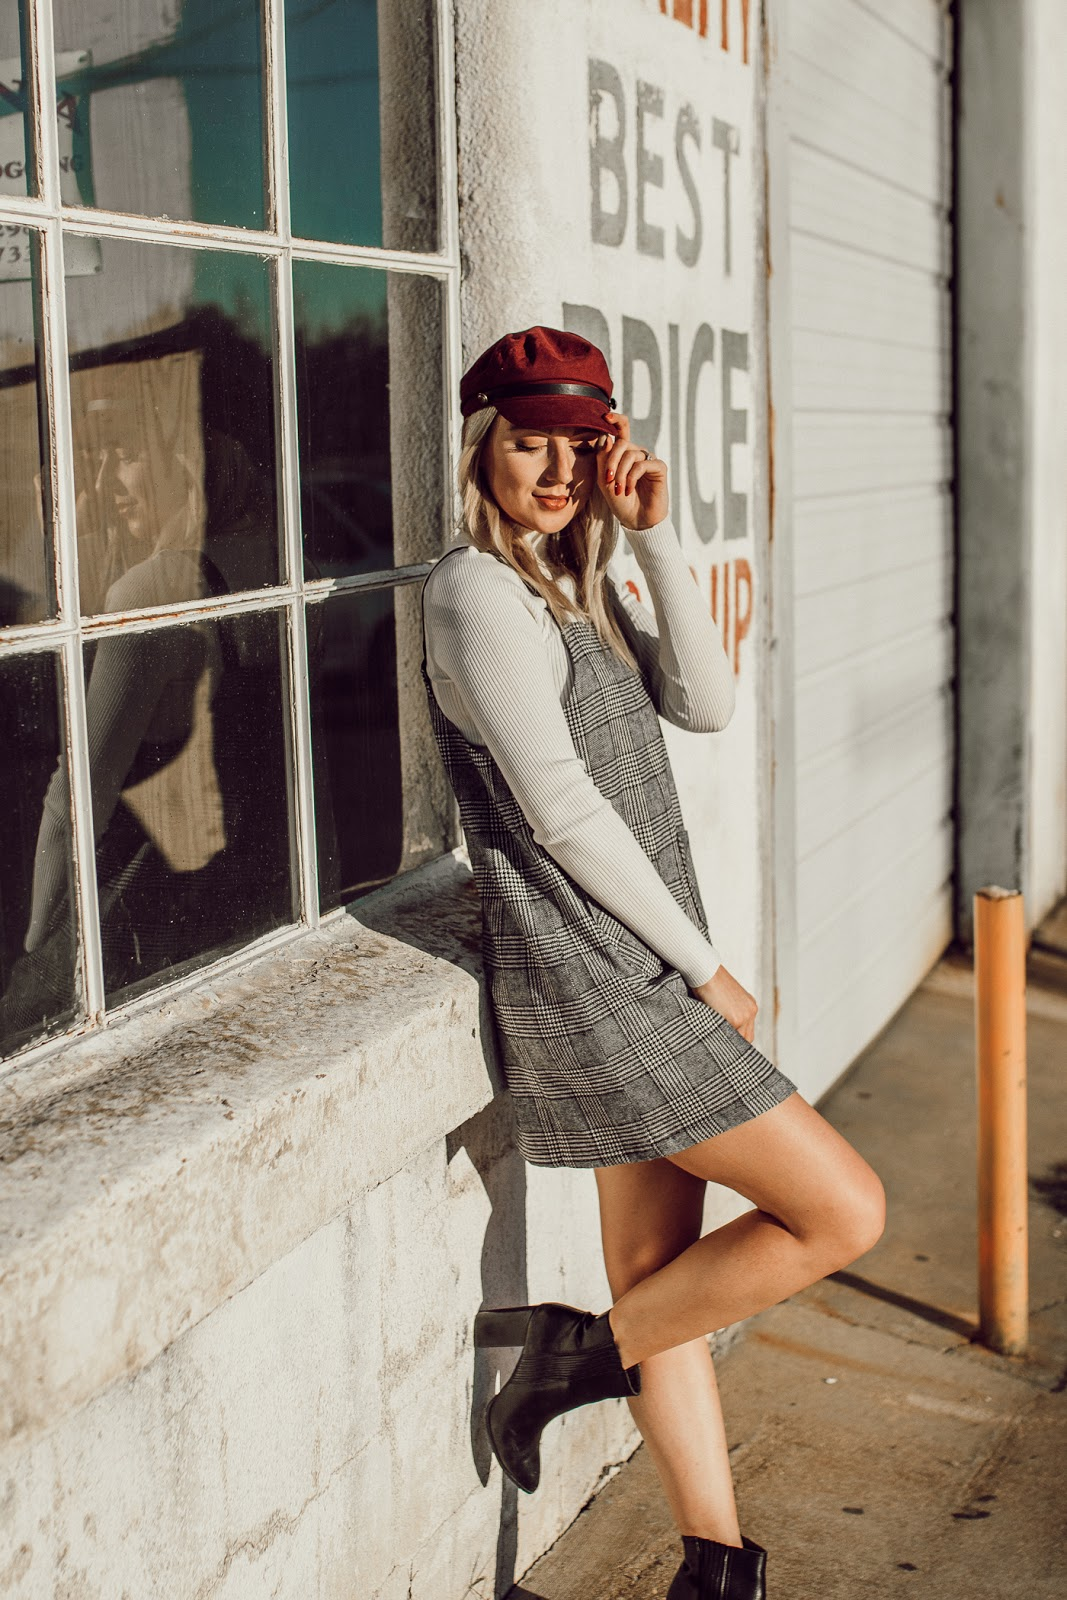 Plaid jumper dress with a mock-neck top and cabby hat